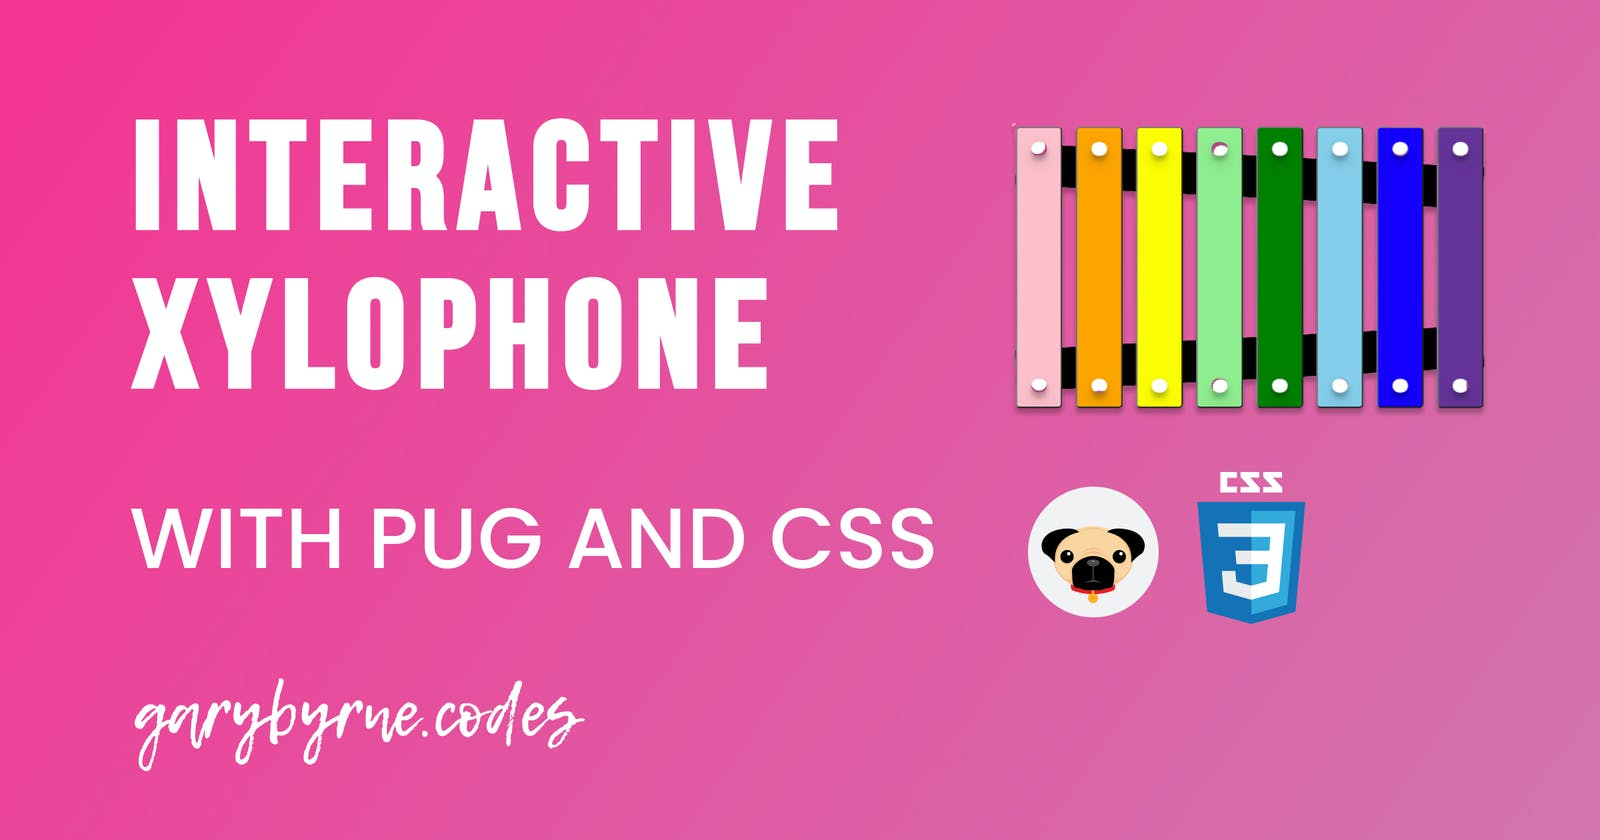 Creating a Xylophone using CSS and Pug